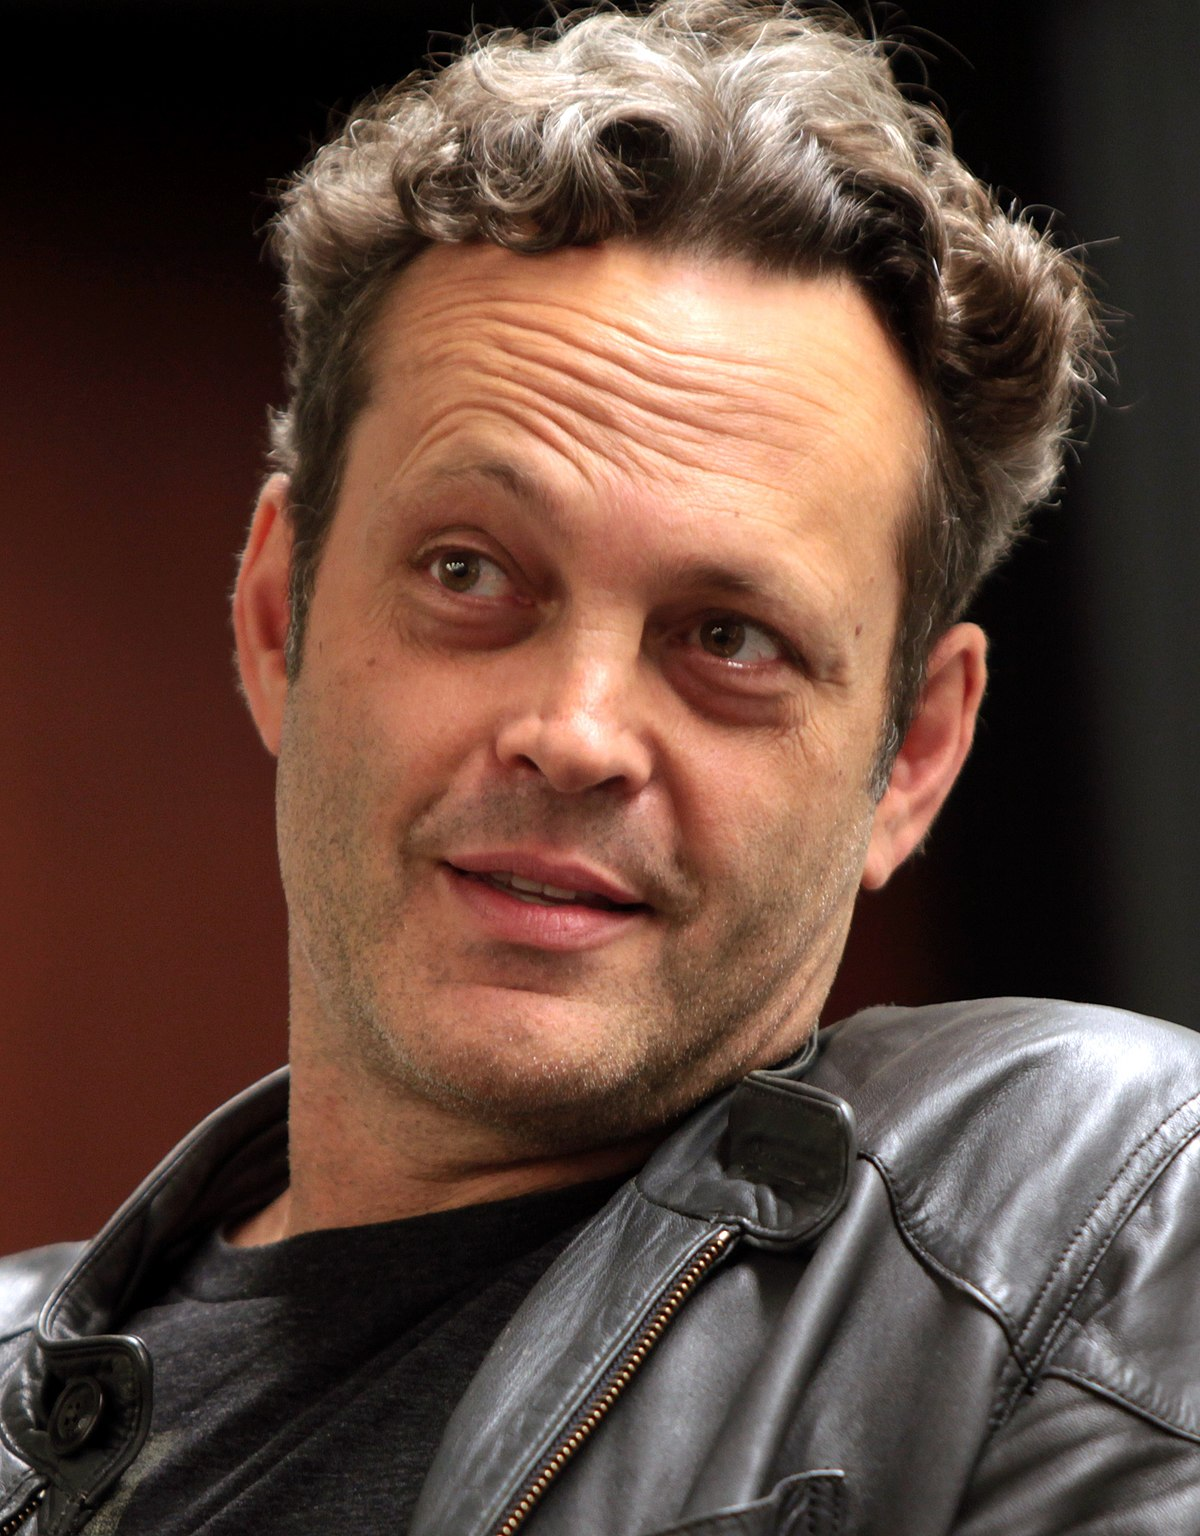 Vince Vaughn Old School Rings With Cigarette Interview